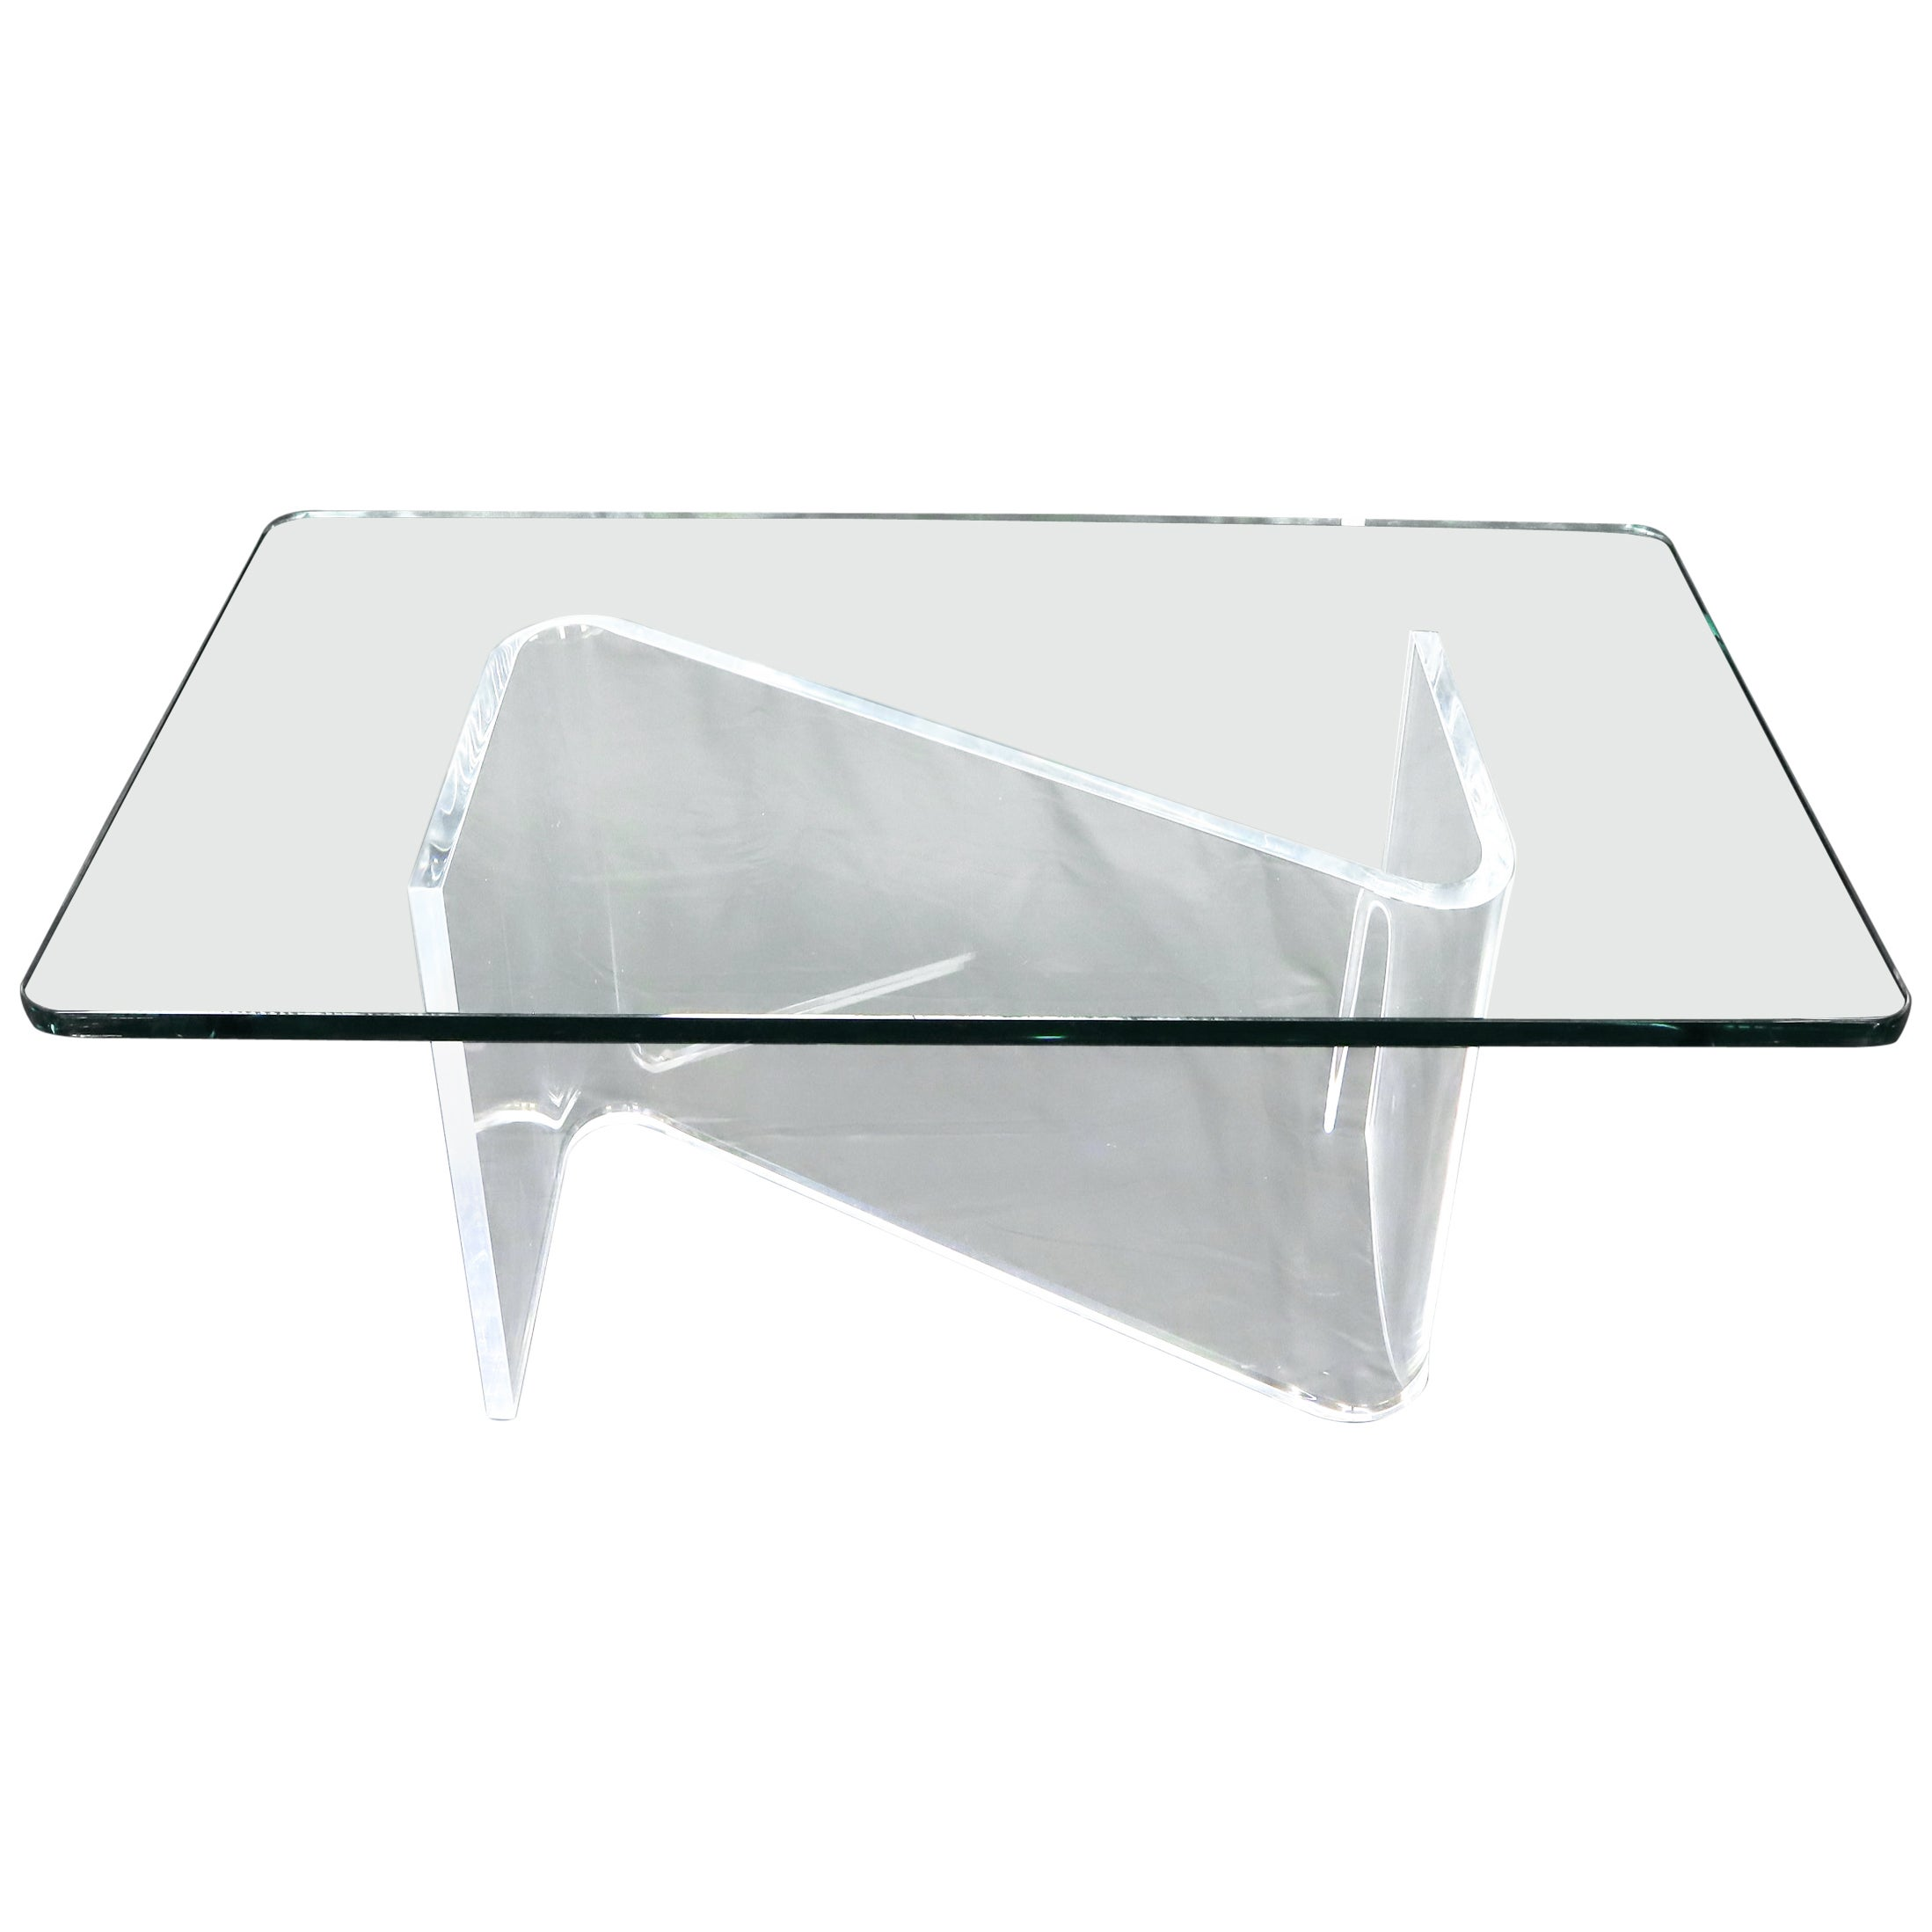 Bent Lucite Z-Shape Base Thick Glass Top Coffee Table